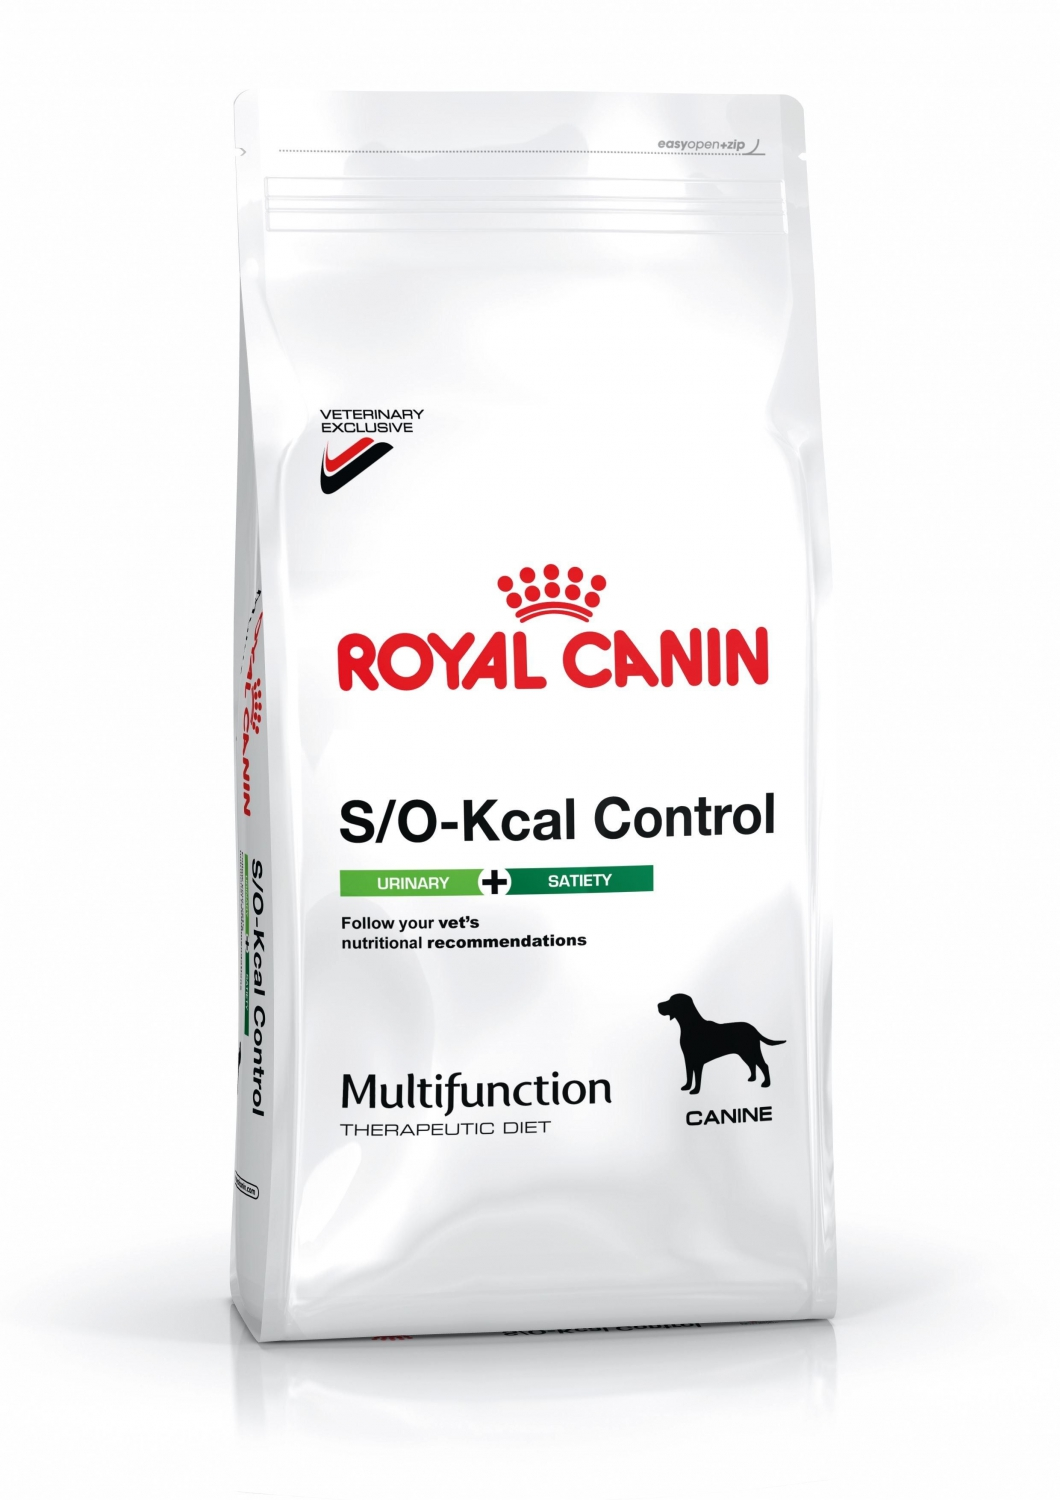 Royal Canin Multifunction S/O-Kcal Control Urinary+Satiety dla psa